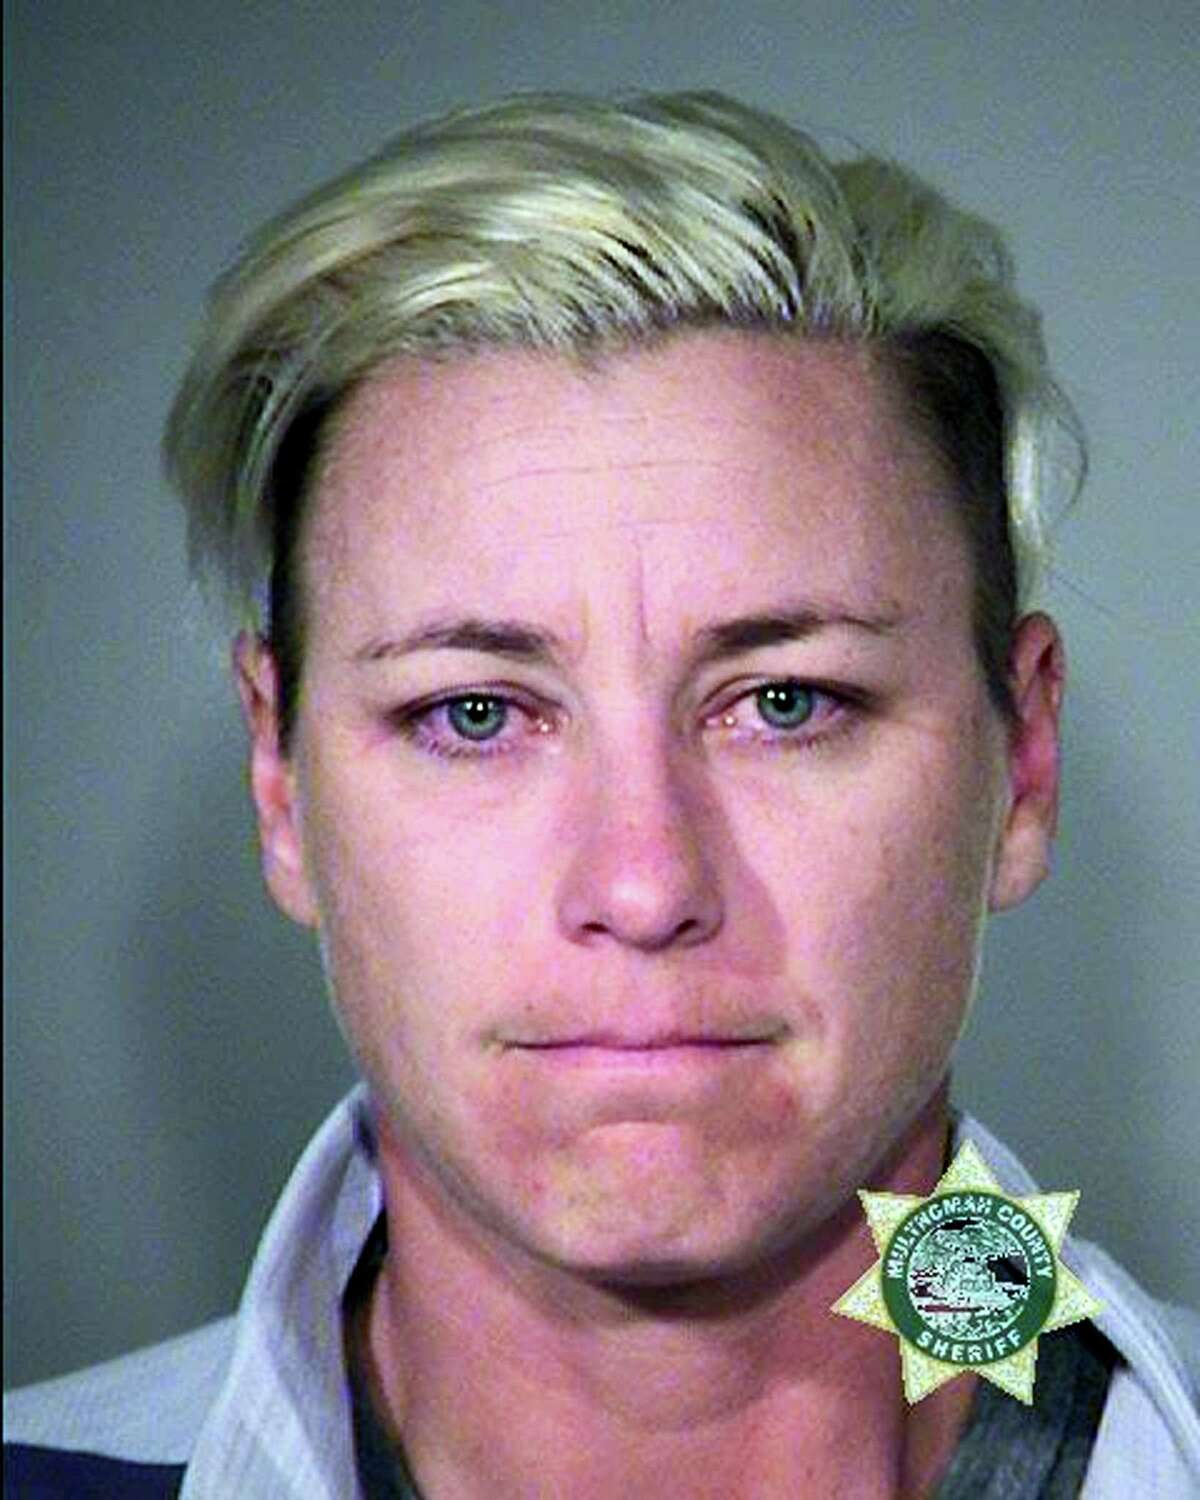 This undated photo provided by Multnomah County Sheriff's Office shows retired World Cup soccer champion Abby Wambach.